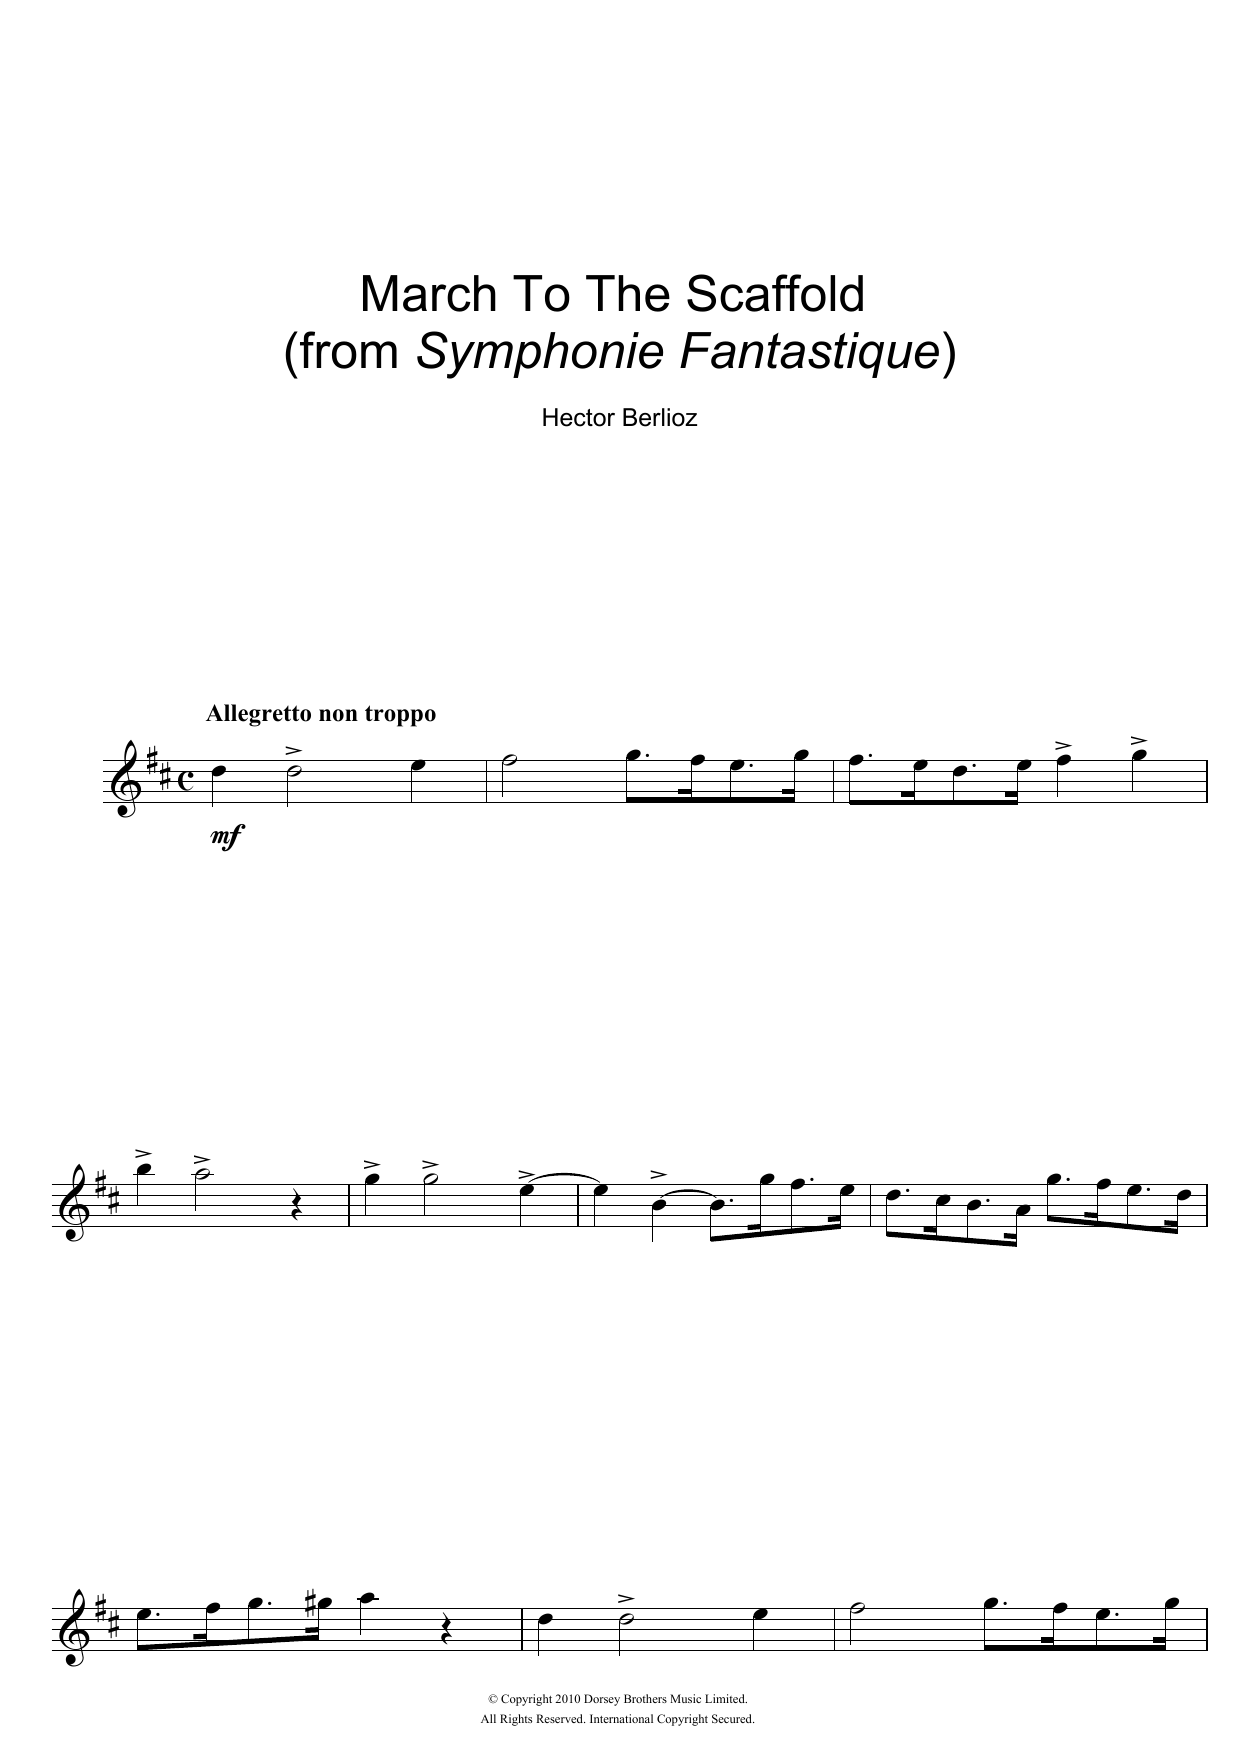 Hector Berlioz - Symphonie Fantastique (4th Movement: March To The Scaffold)